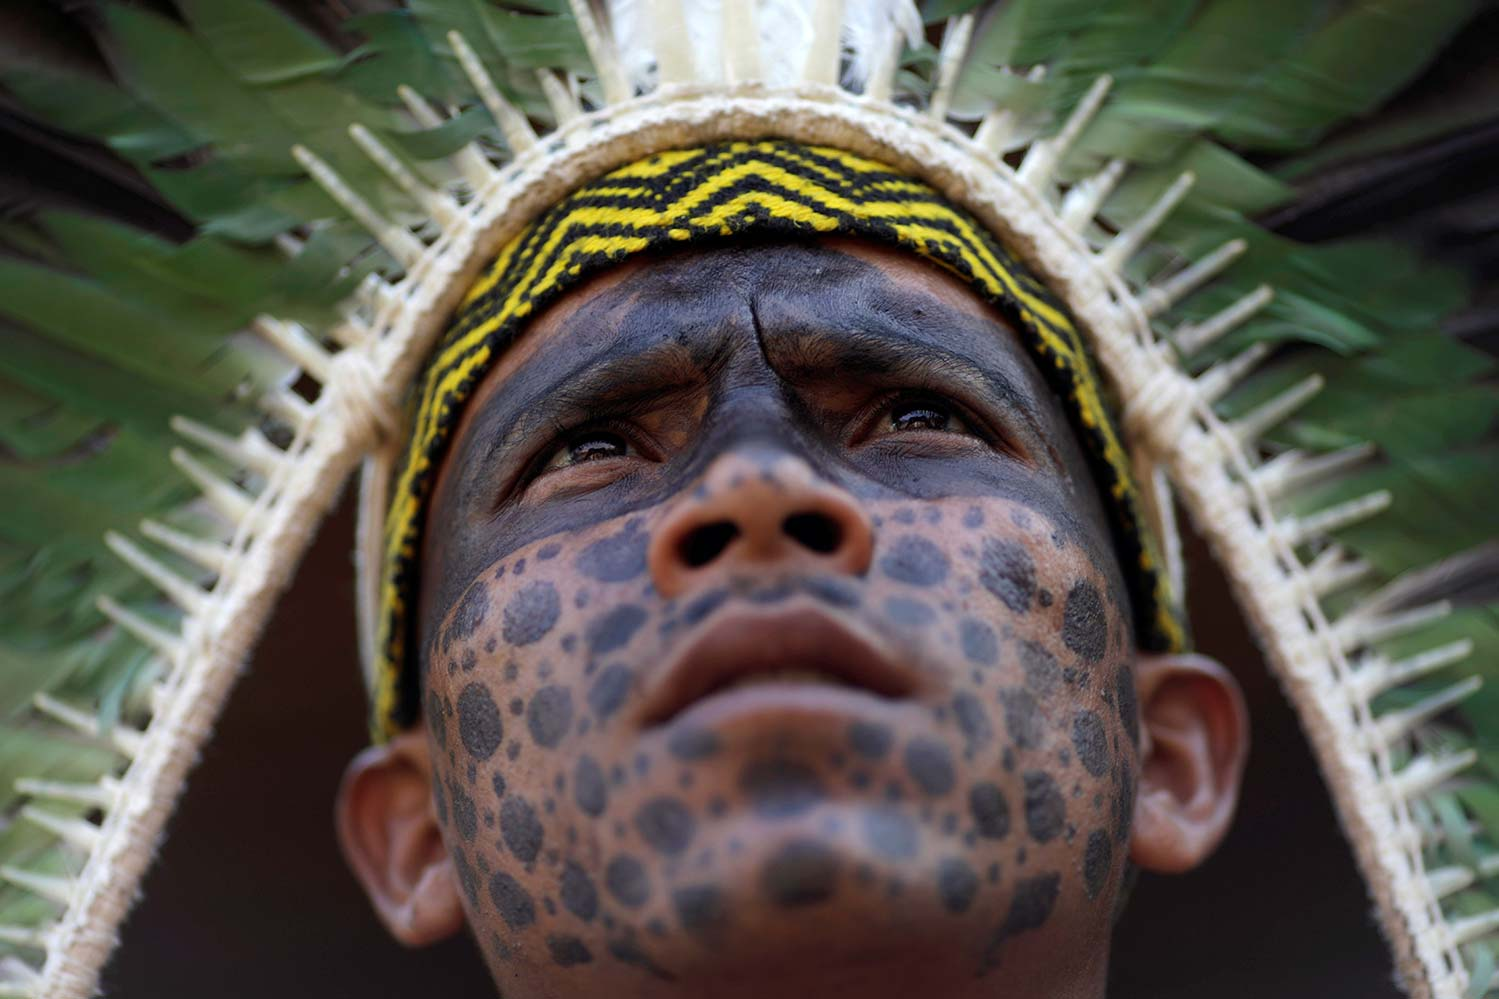 An man from the Shanenawa tribe observes an indigenous dance during a festival to celebrate nature and ask for an end to the burning of the Amazon Sept. 1 in Feijo, Brazil. (CNS photo/Ueslei Marcelino, Reuters)